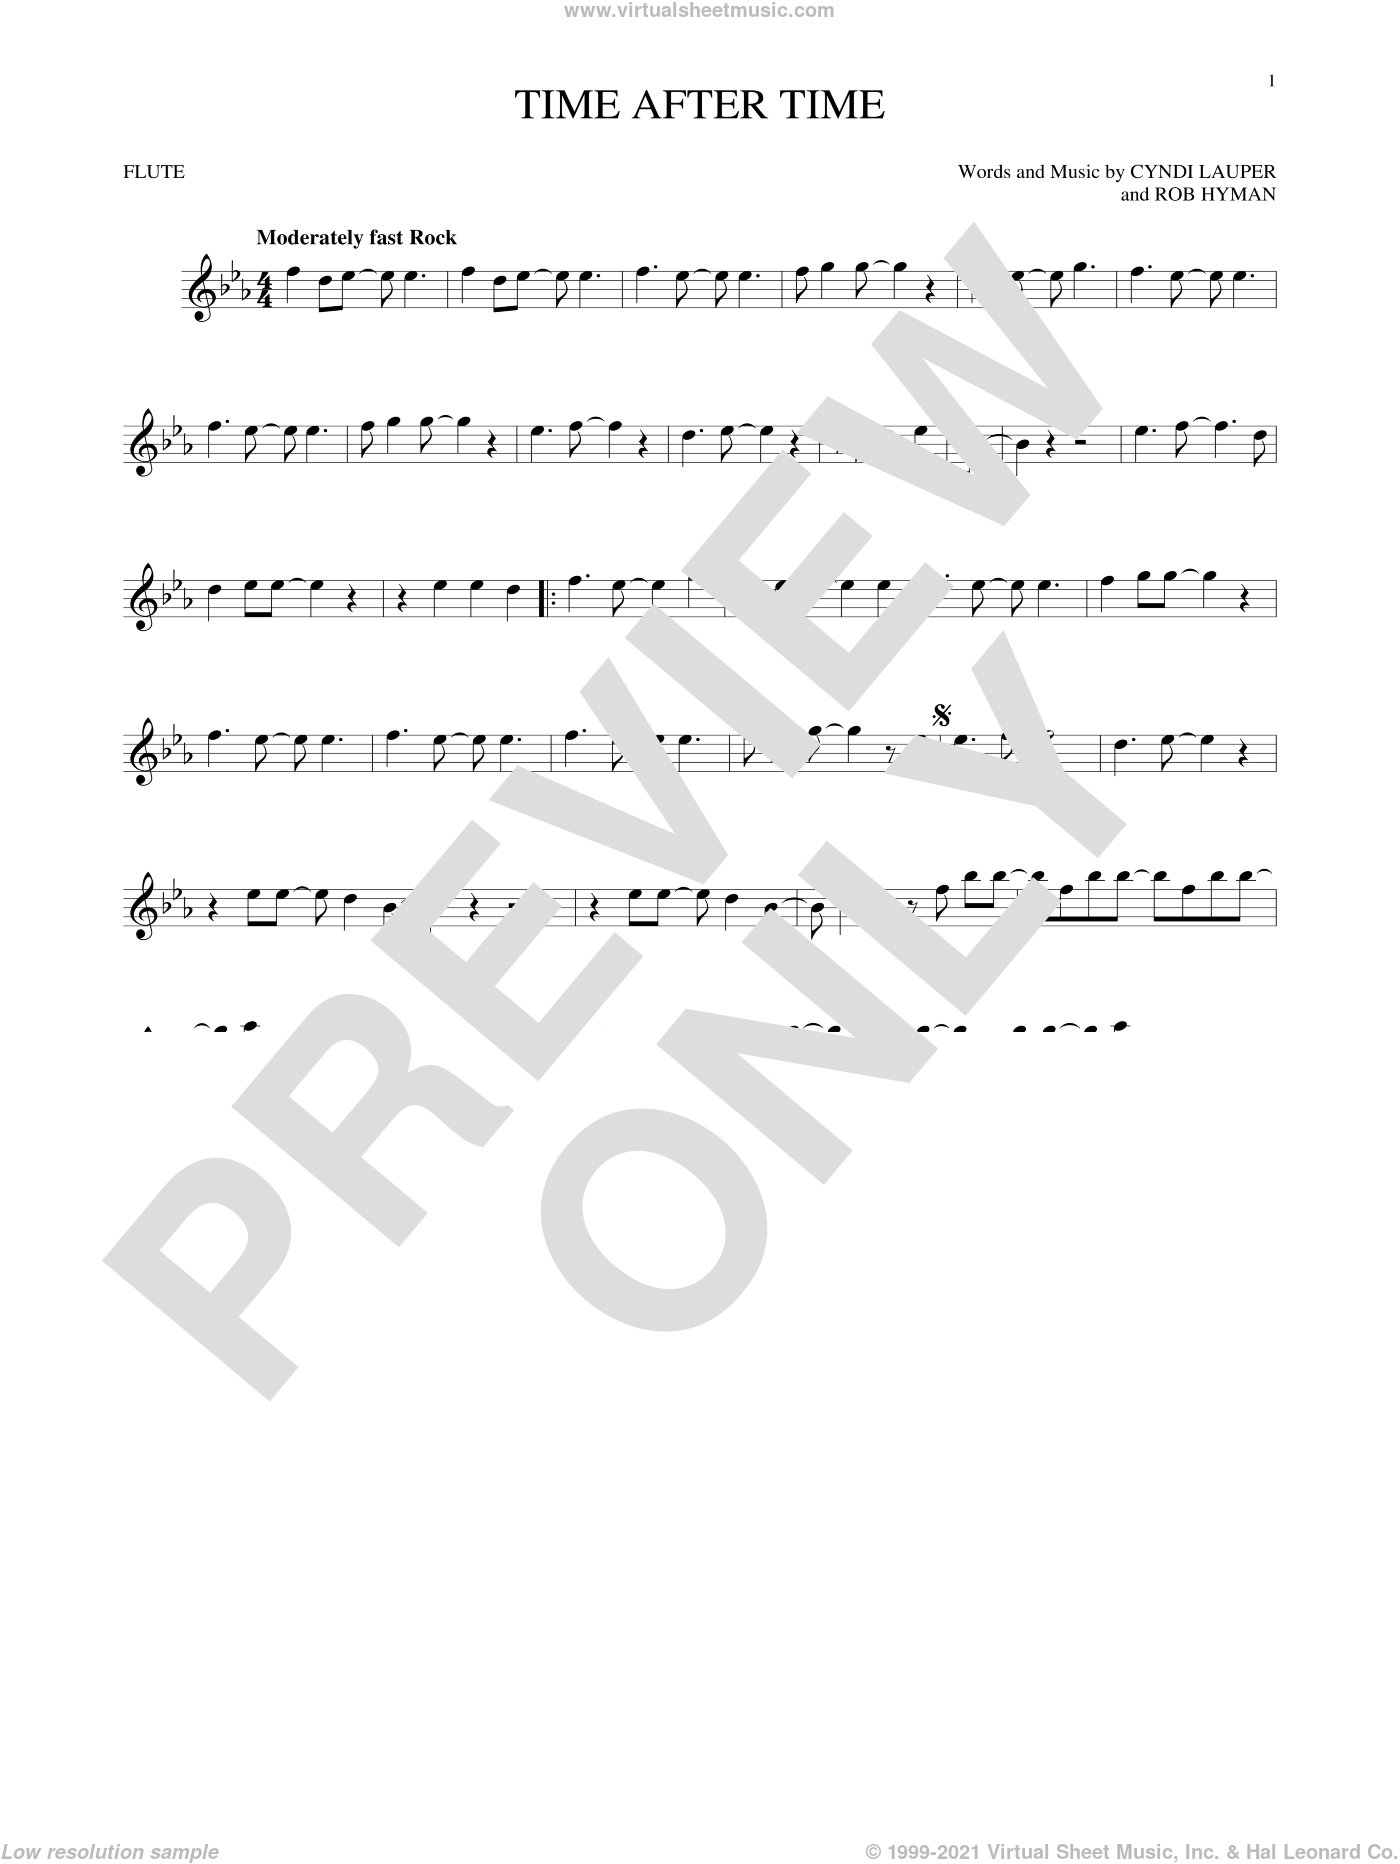 Time After Time sheet music for flute solo by Cyndi Lauper, Inoj, Javier Colon and Rob Hyman, intermediate skill level